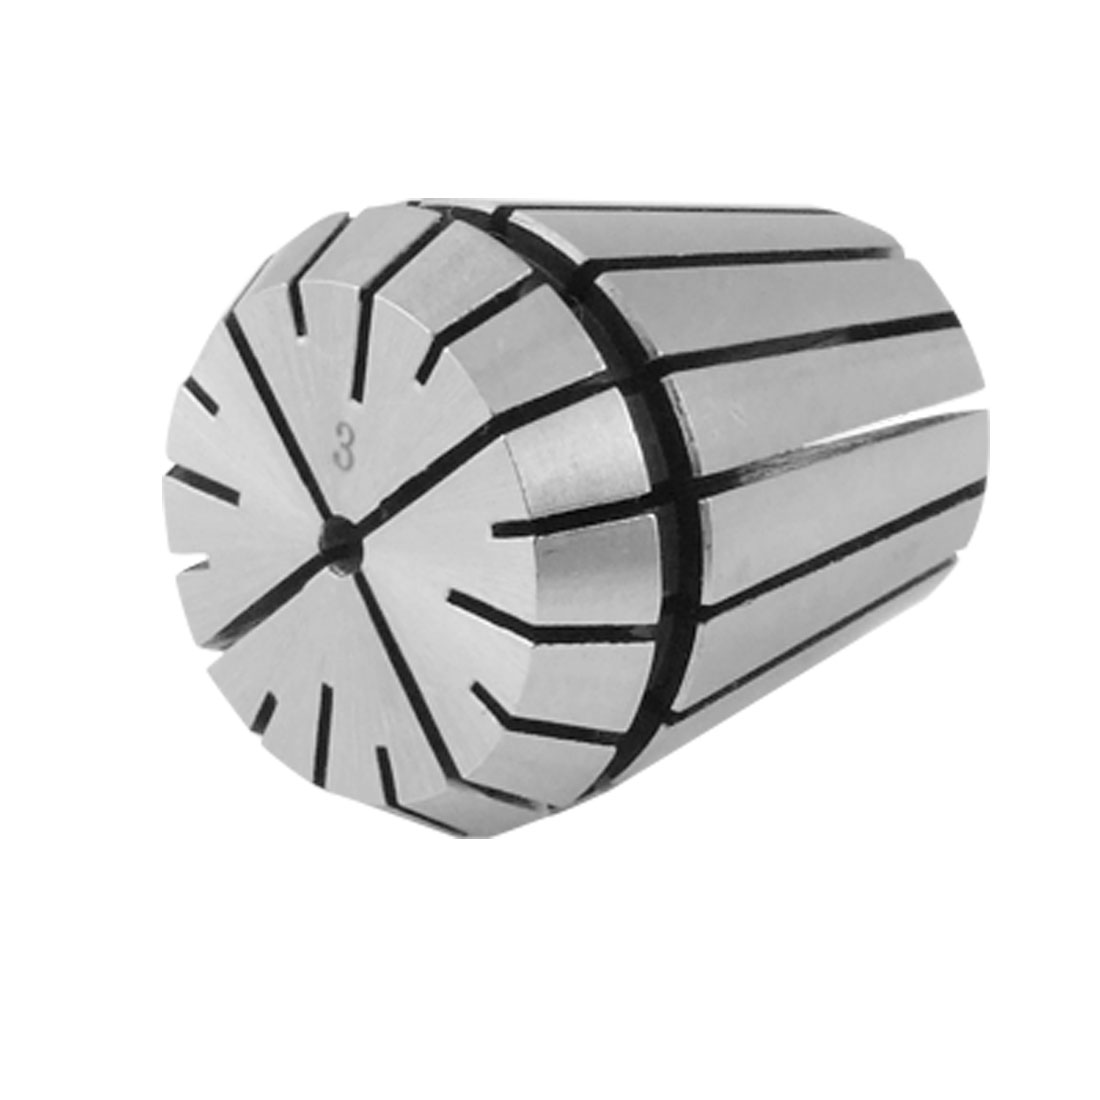 Clamping Range 3.0-2.0mm Stainless Steel ER32-3 Spring Collet